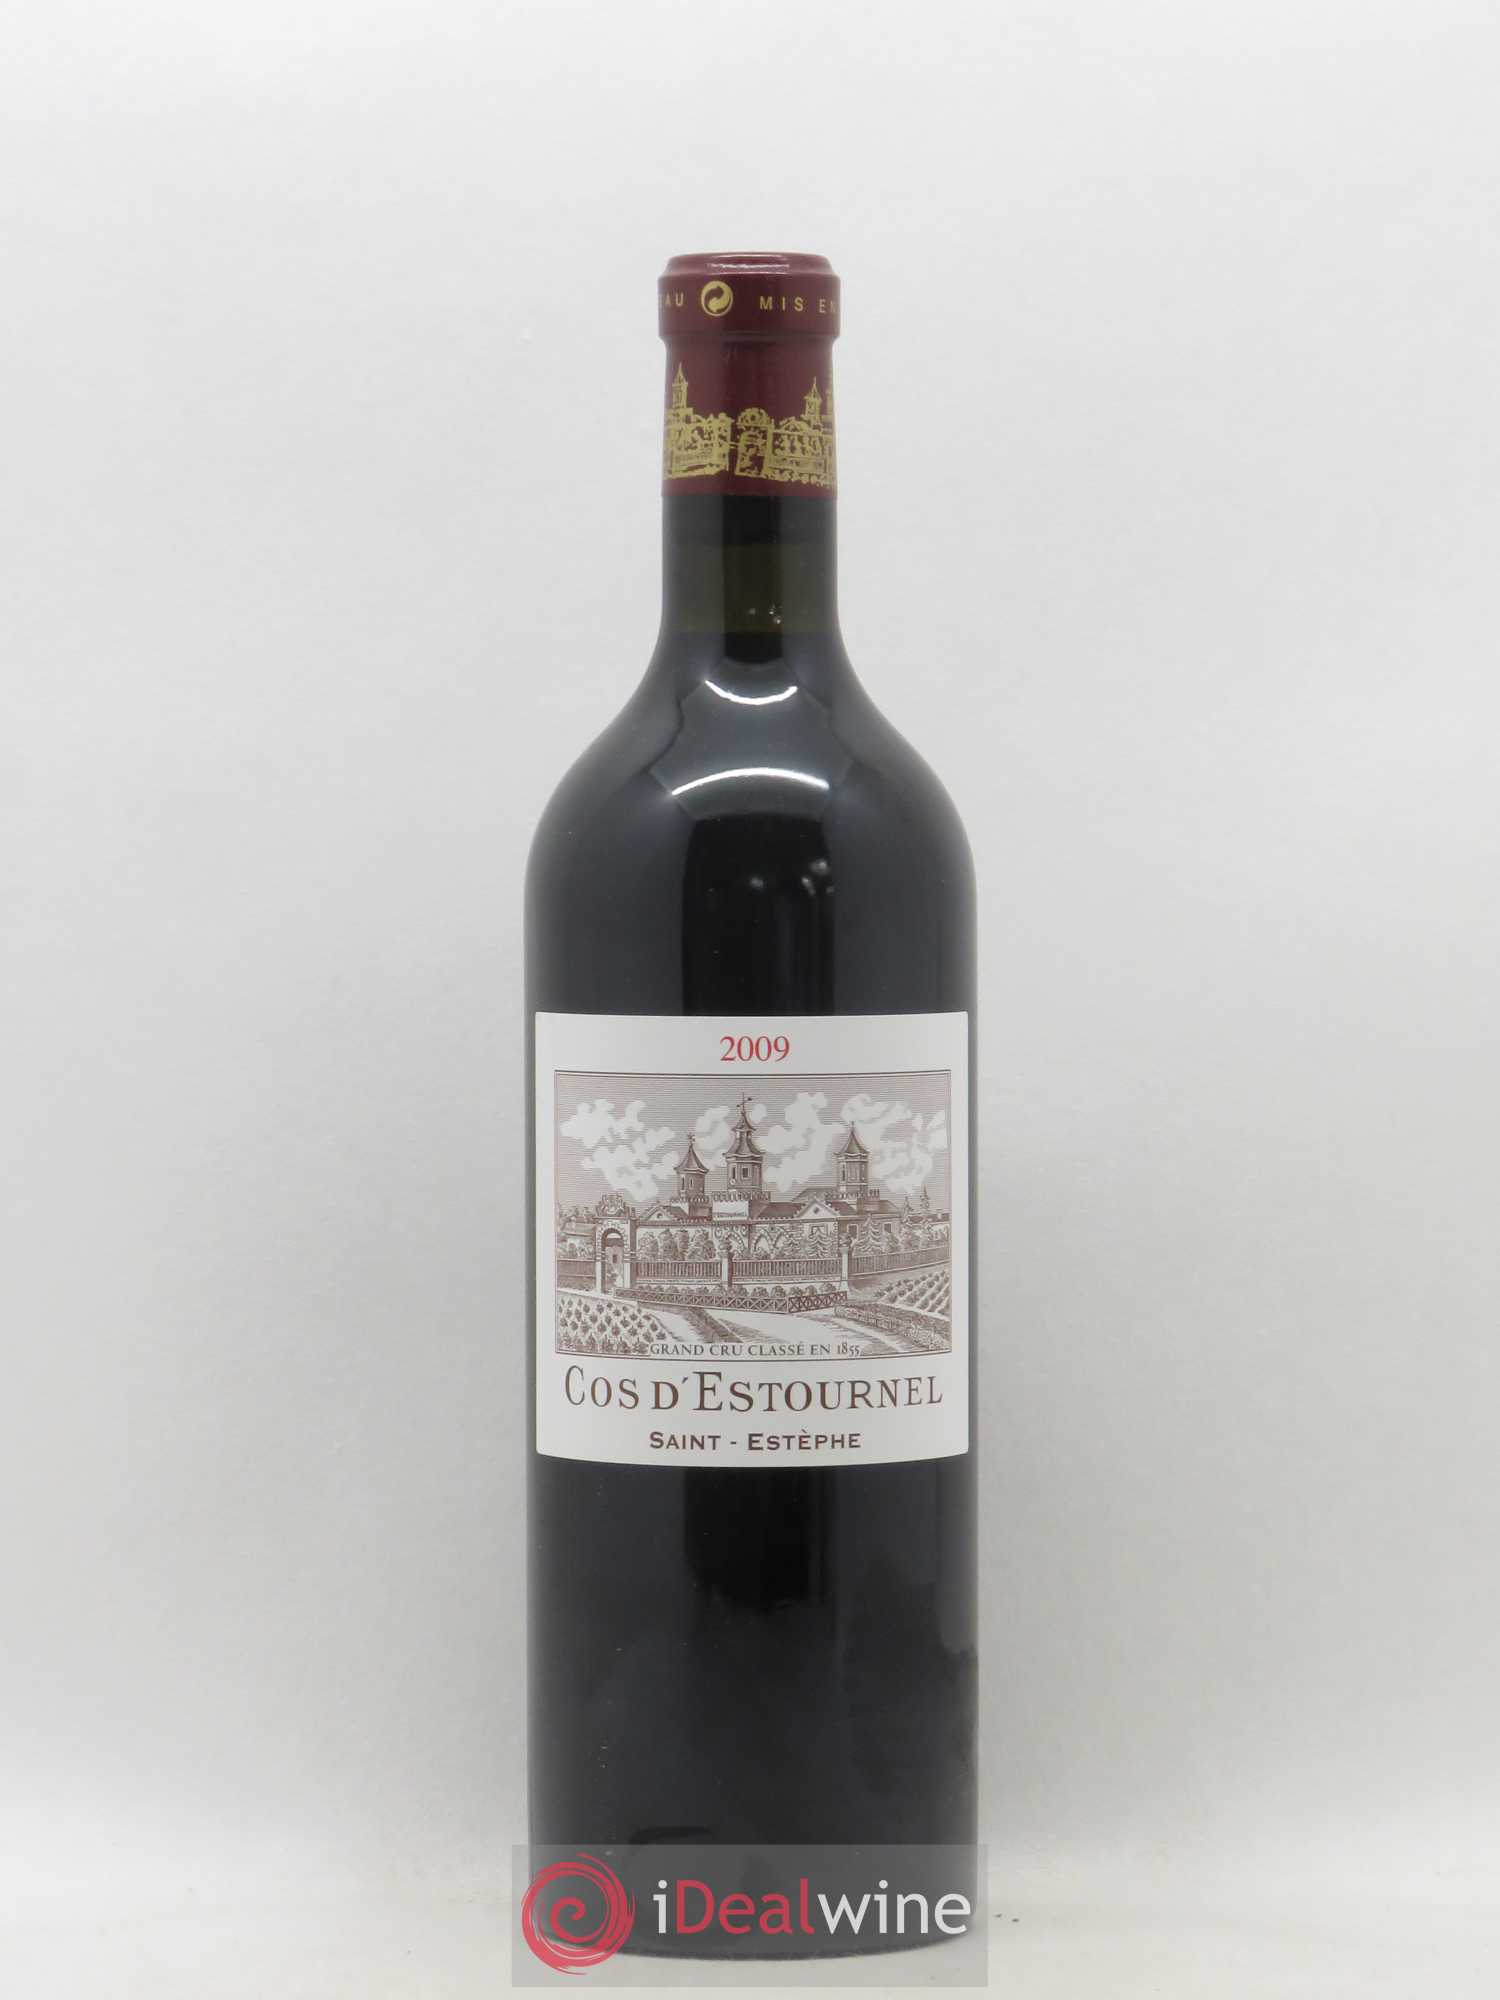 Cos d'Estournel 2ème Grand Cru Classé  2009 - Lot of 1 Bottle